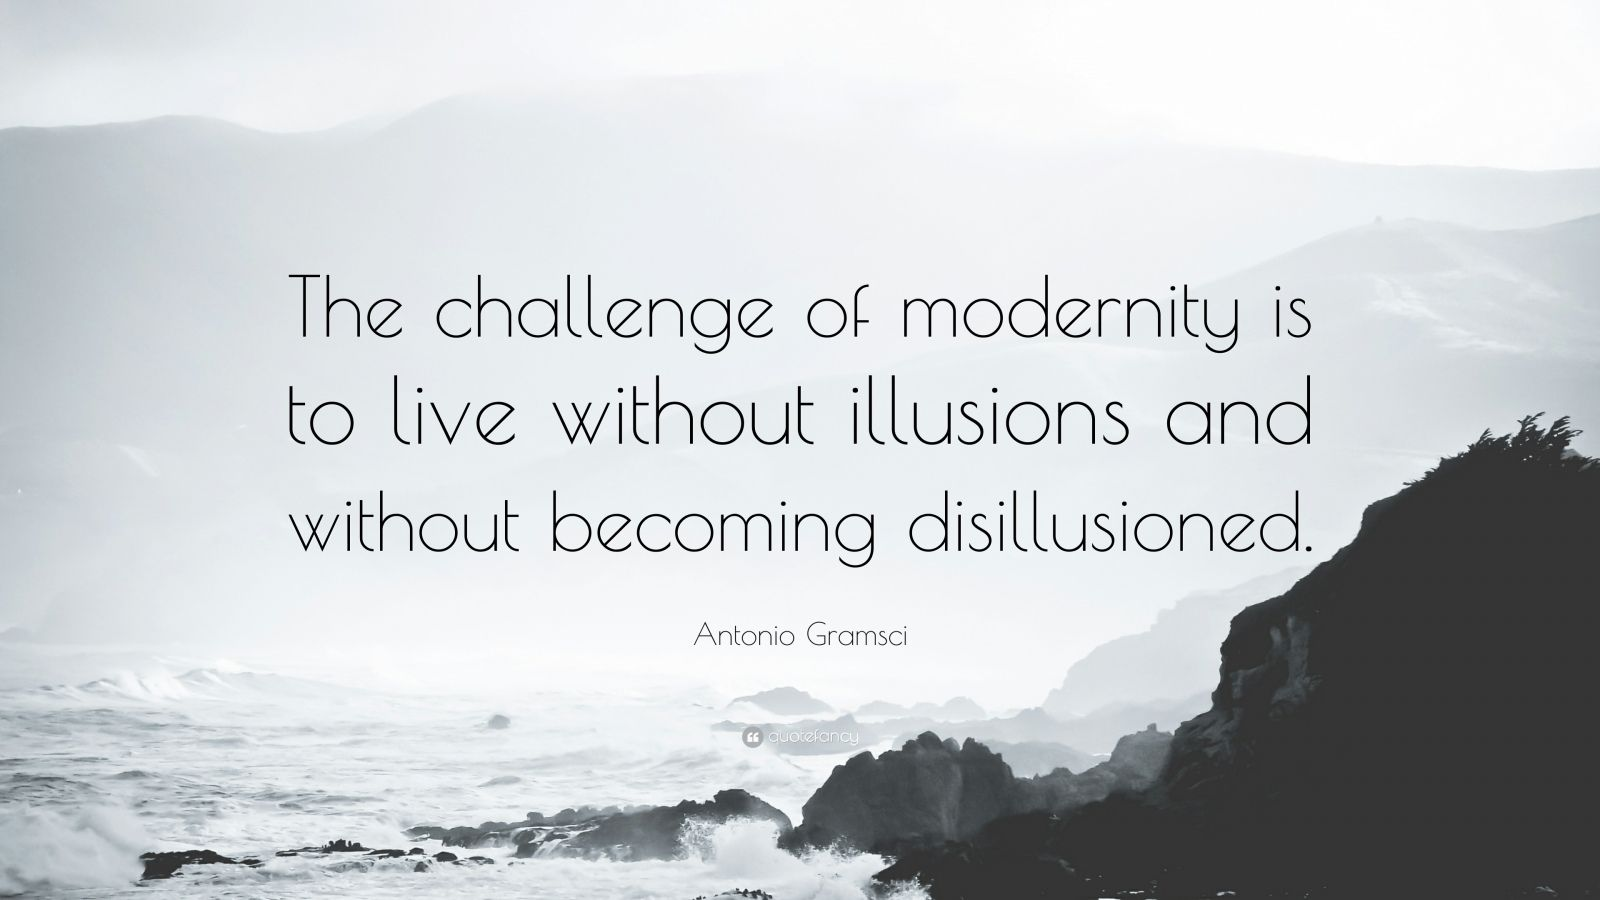 """Antonio Gramsci Quote: """"The challenge of modernity is to live without illusions and without becoming disillusioned."""""""